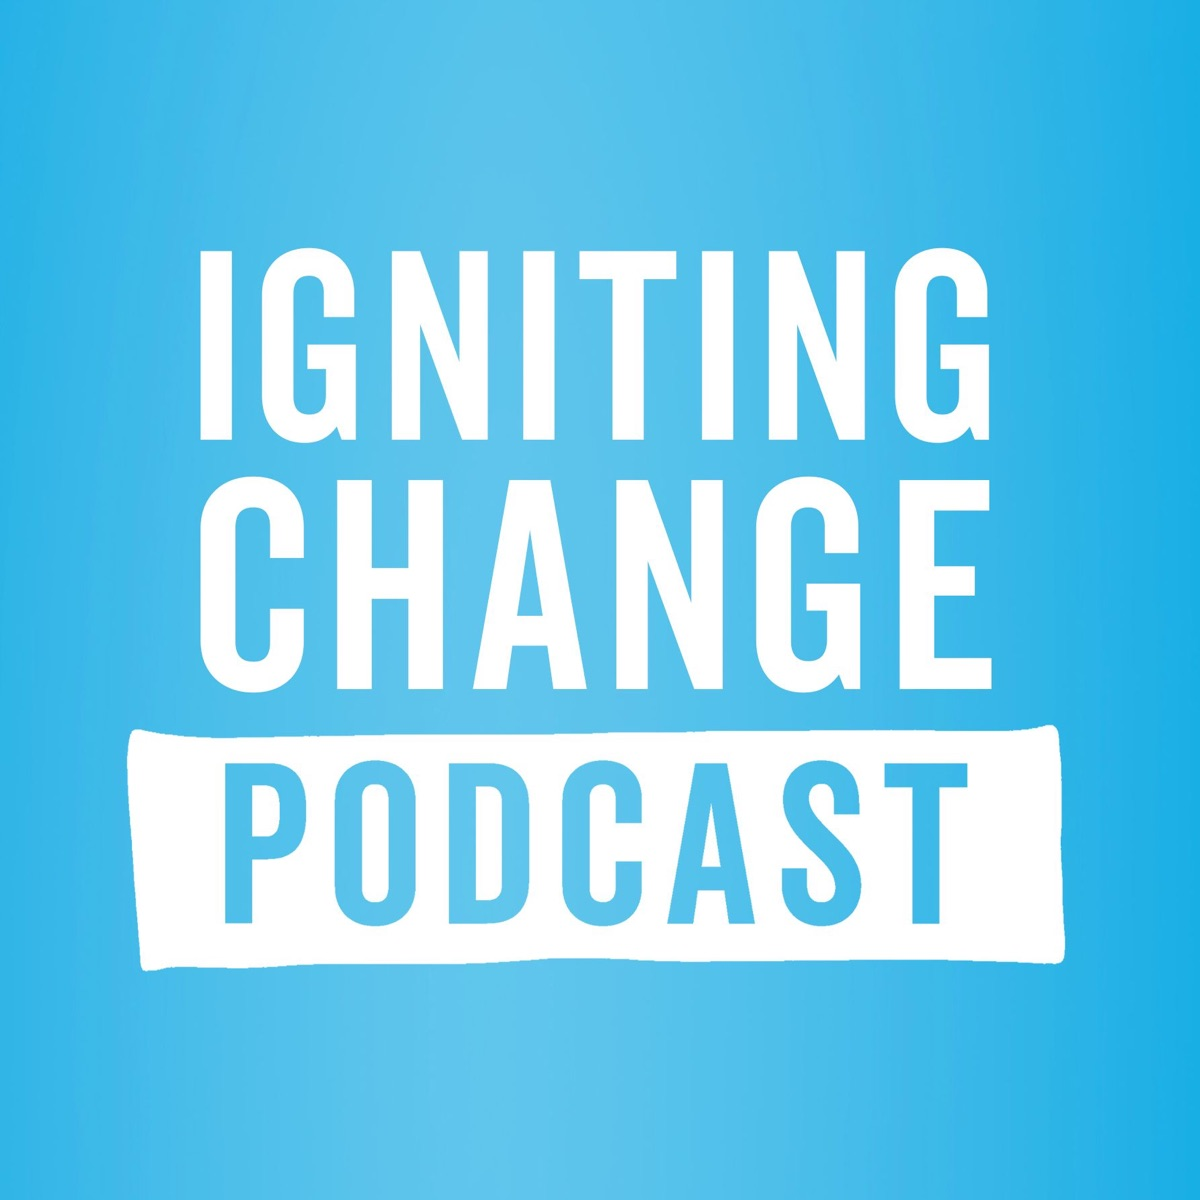 Igniting Change Podcast